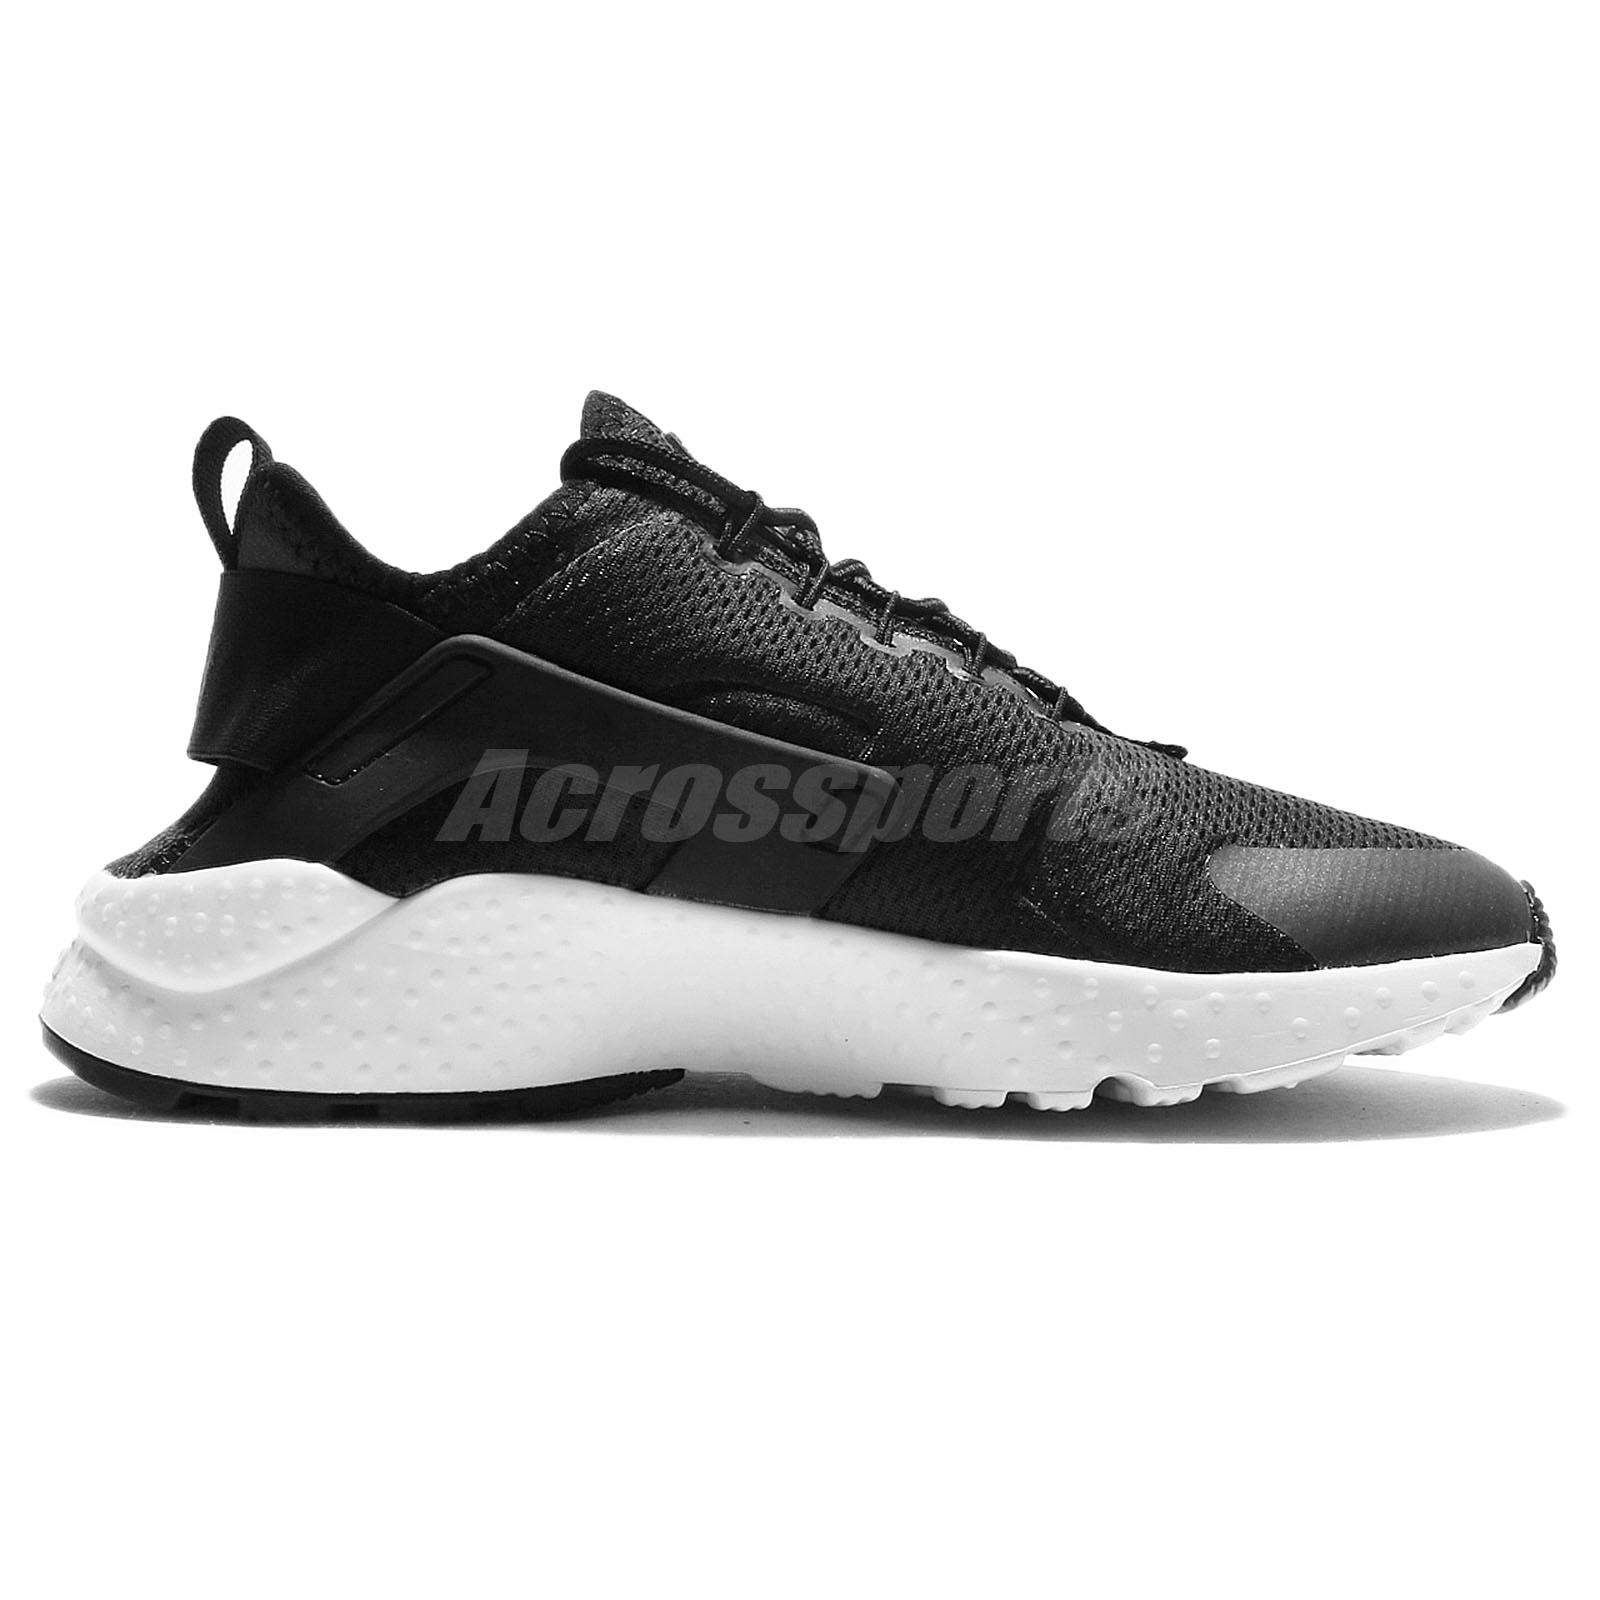 Nike Air Huarache Run Ultra Running Shoes  1b8c1e14d